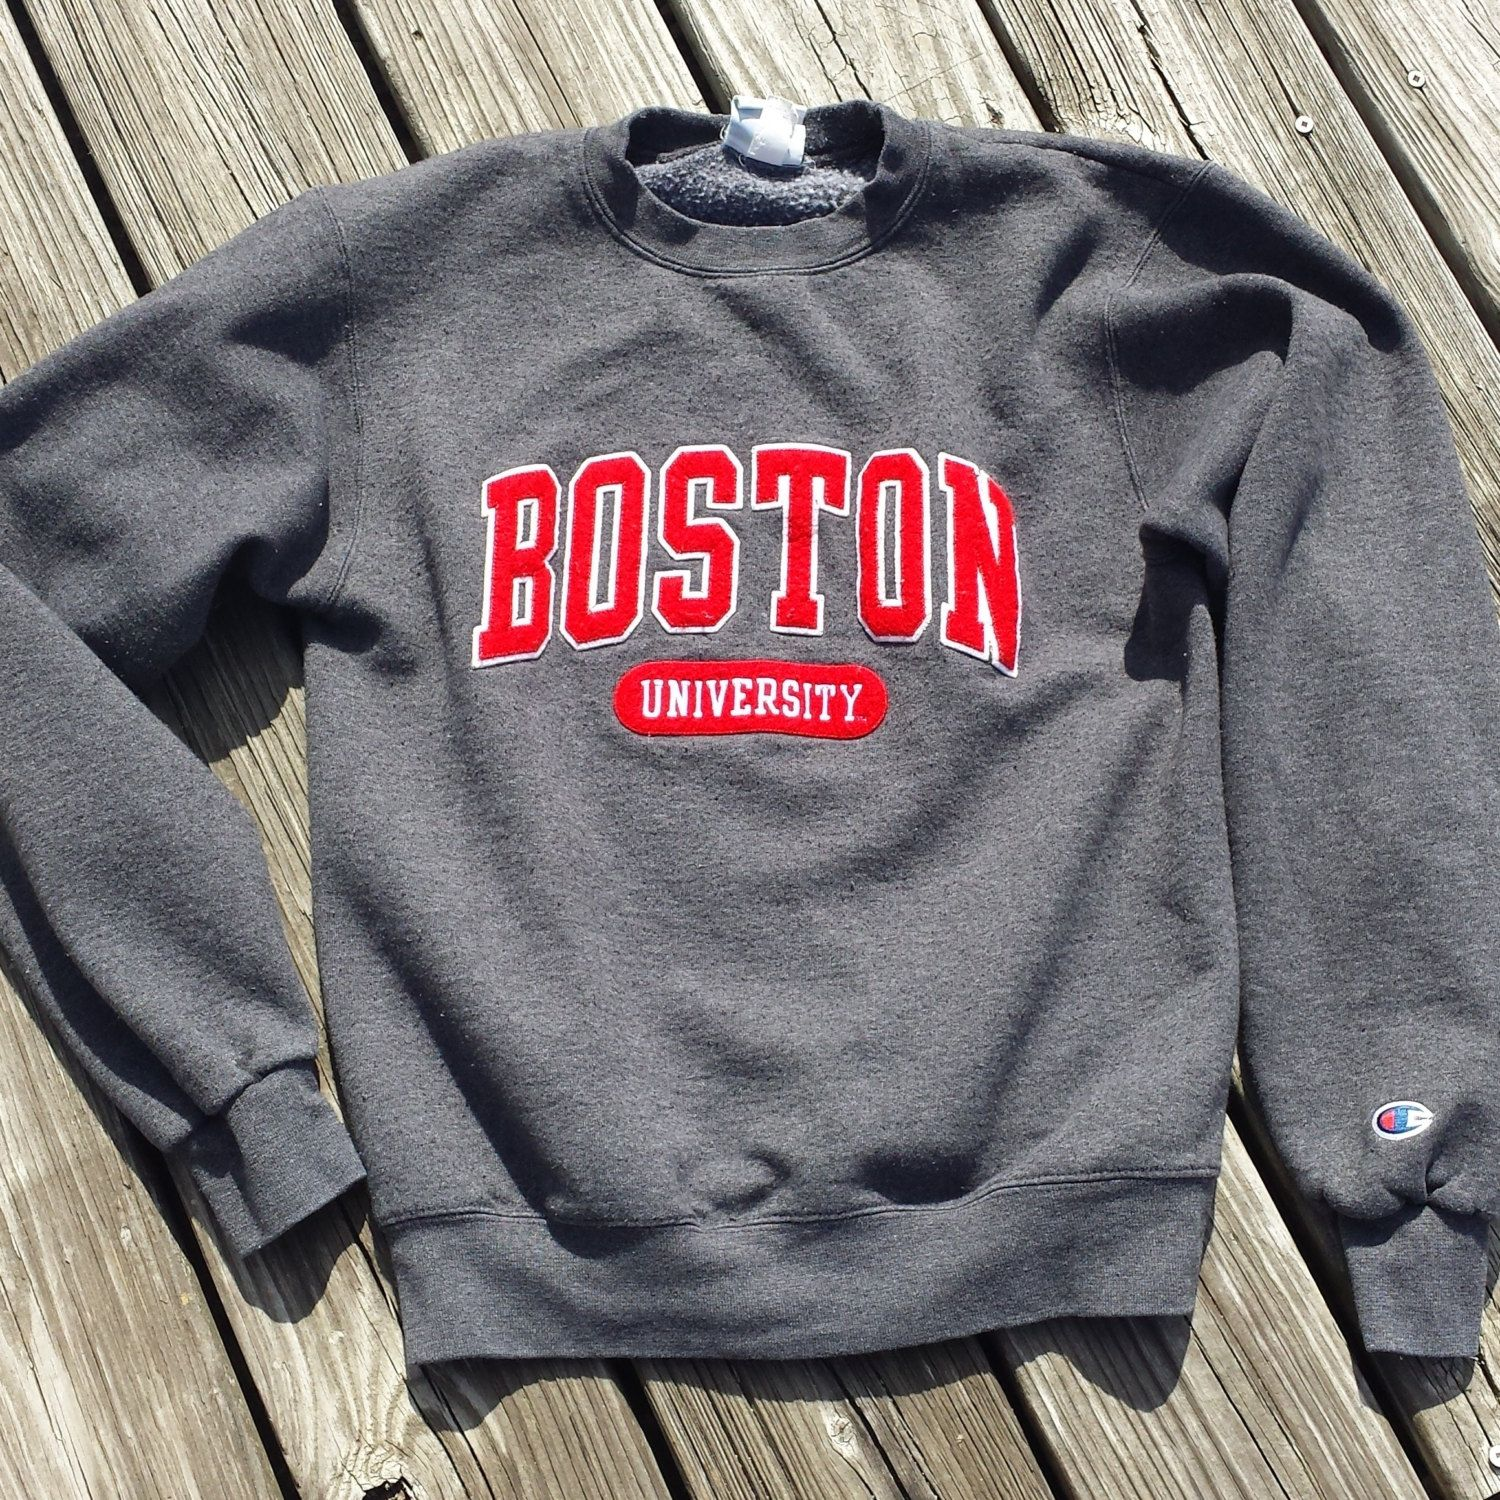 Vintage 1980s BOSTON University Women's Sweatshirt by Champion - Appliqued Lettering - SZ XS by TomieHarleneVintage on Etsy #vintageclothing #bostonu #boston